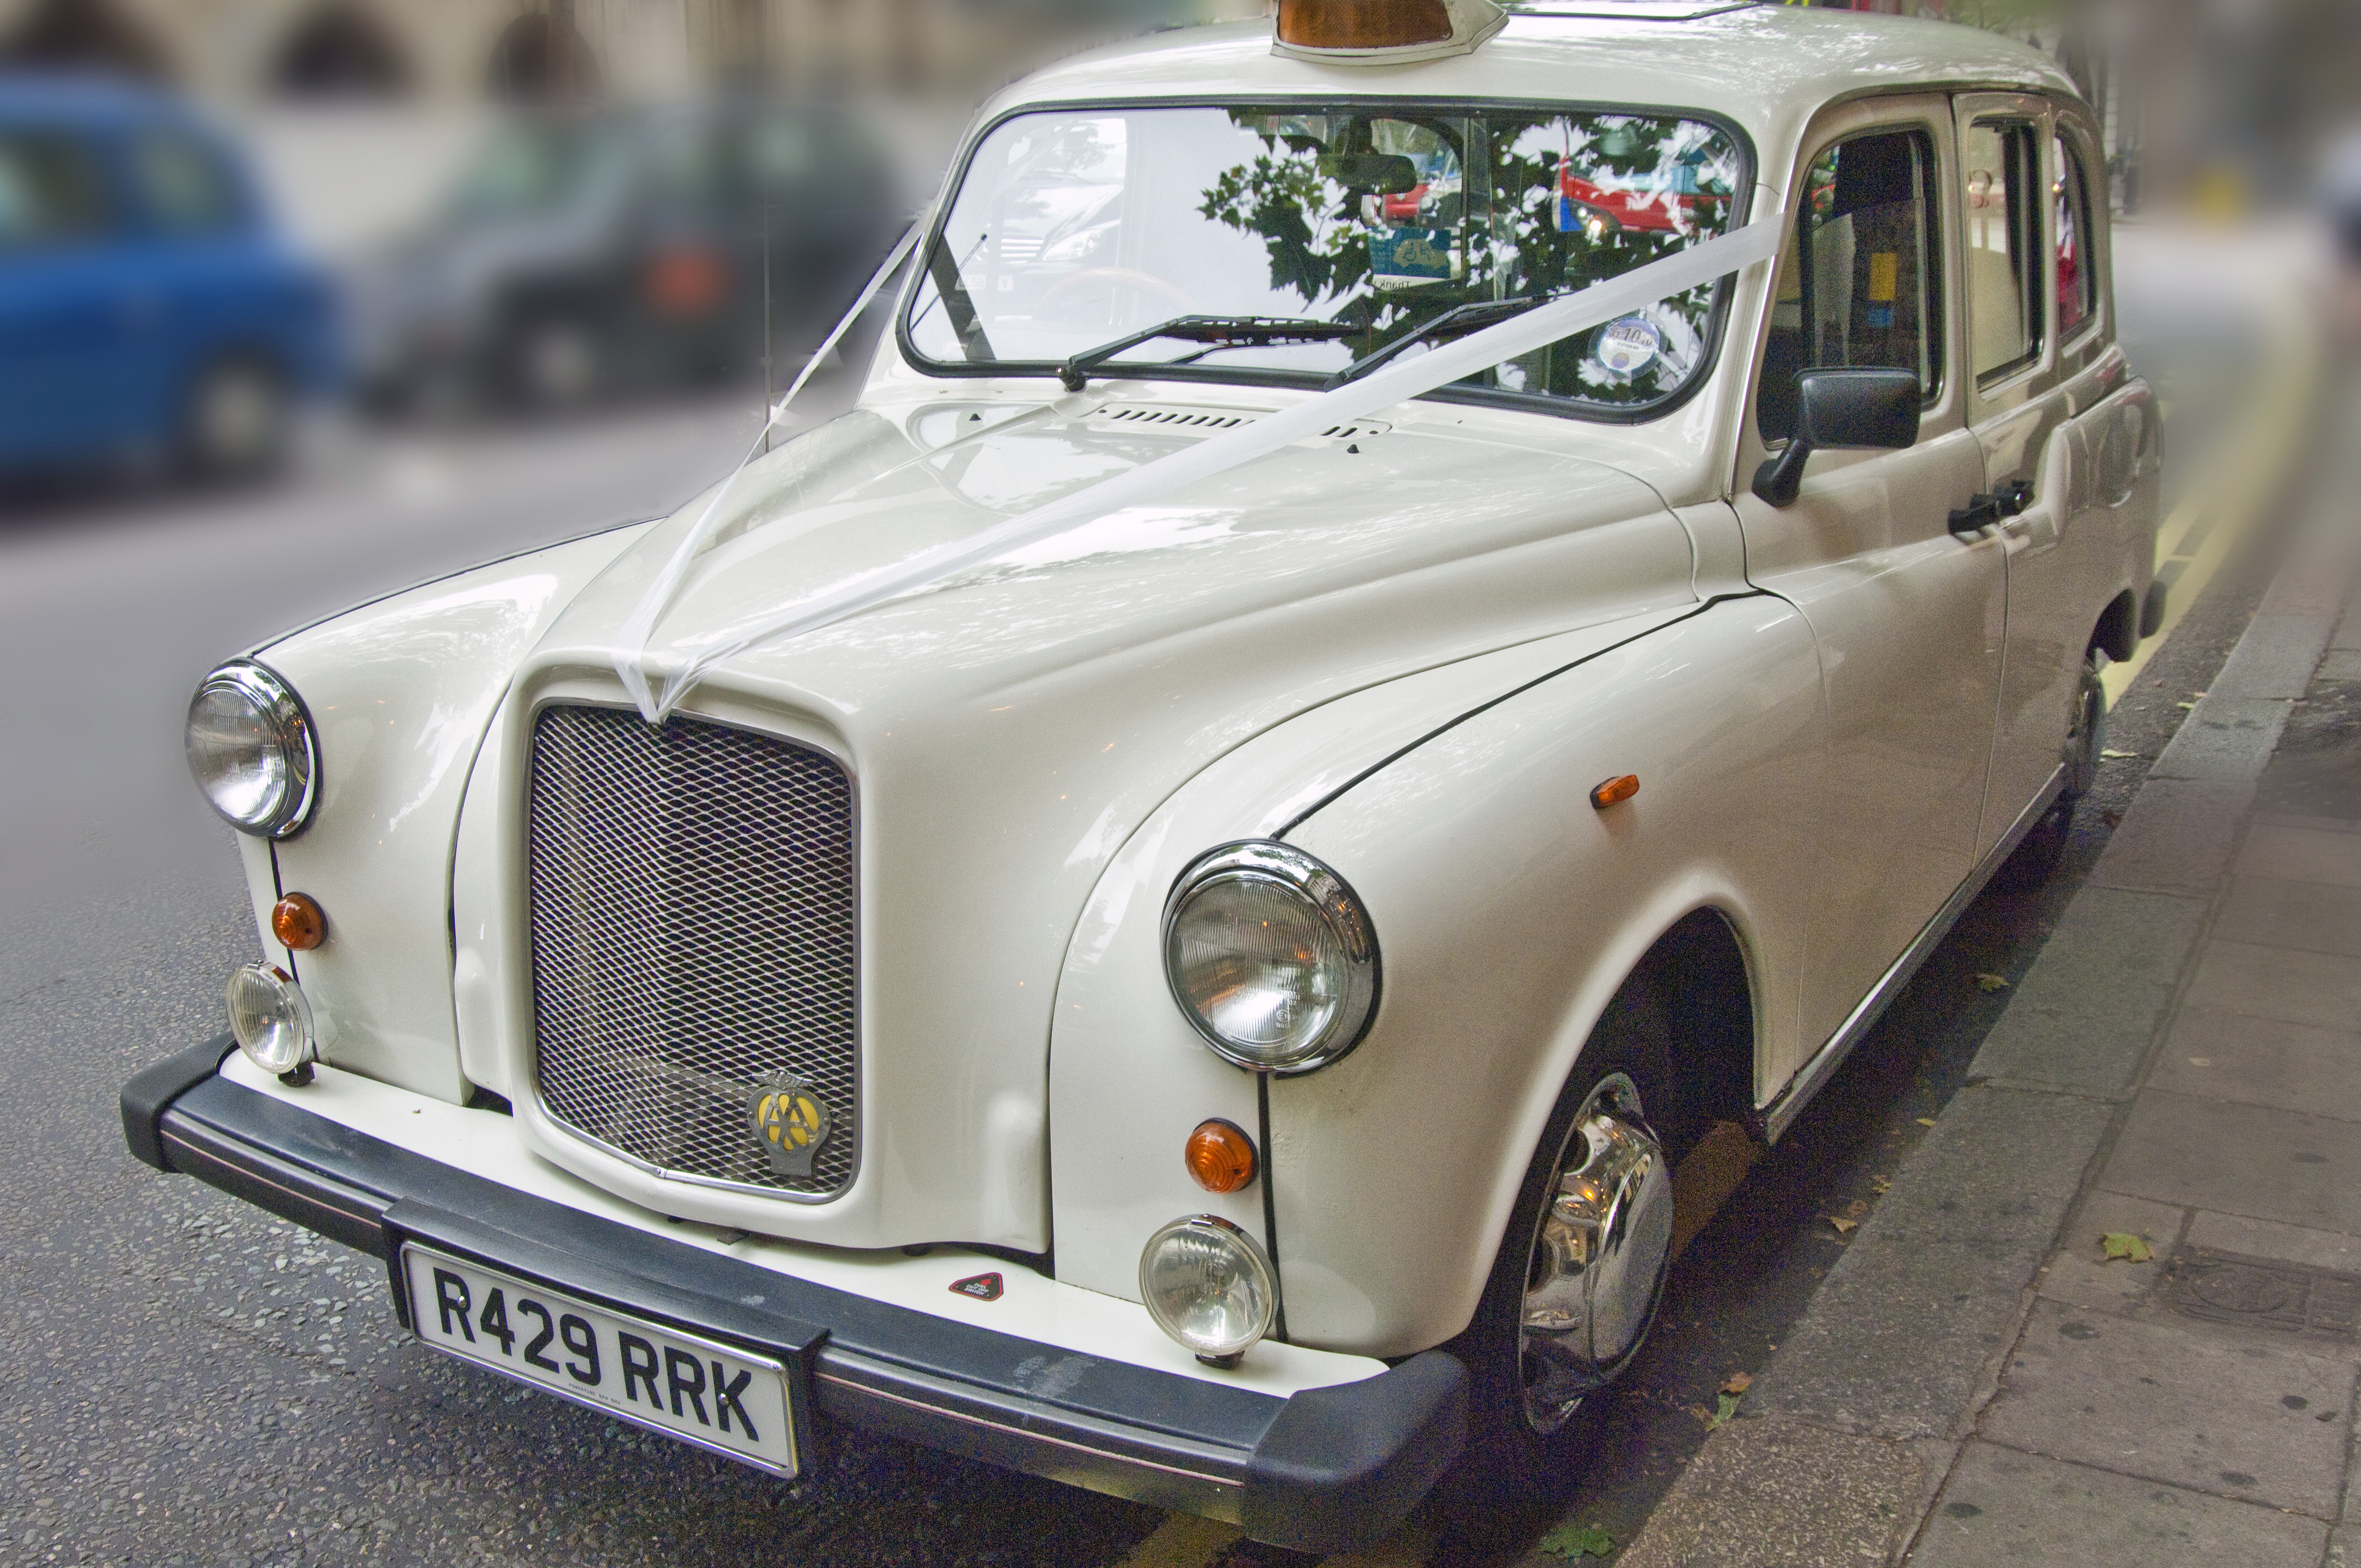 London Taxis Film Production - Taxis & Prices — London Taxis Film ...